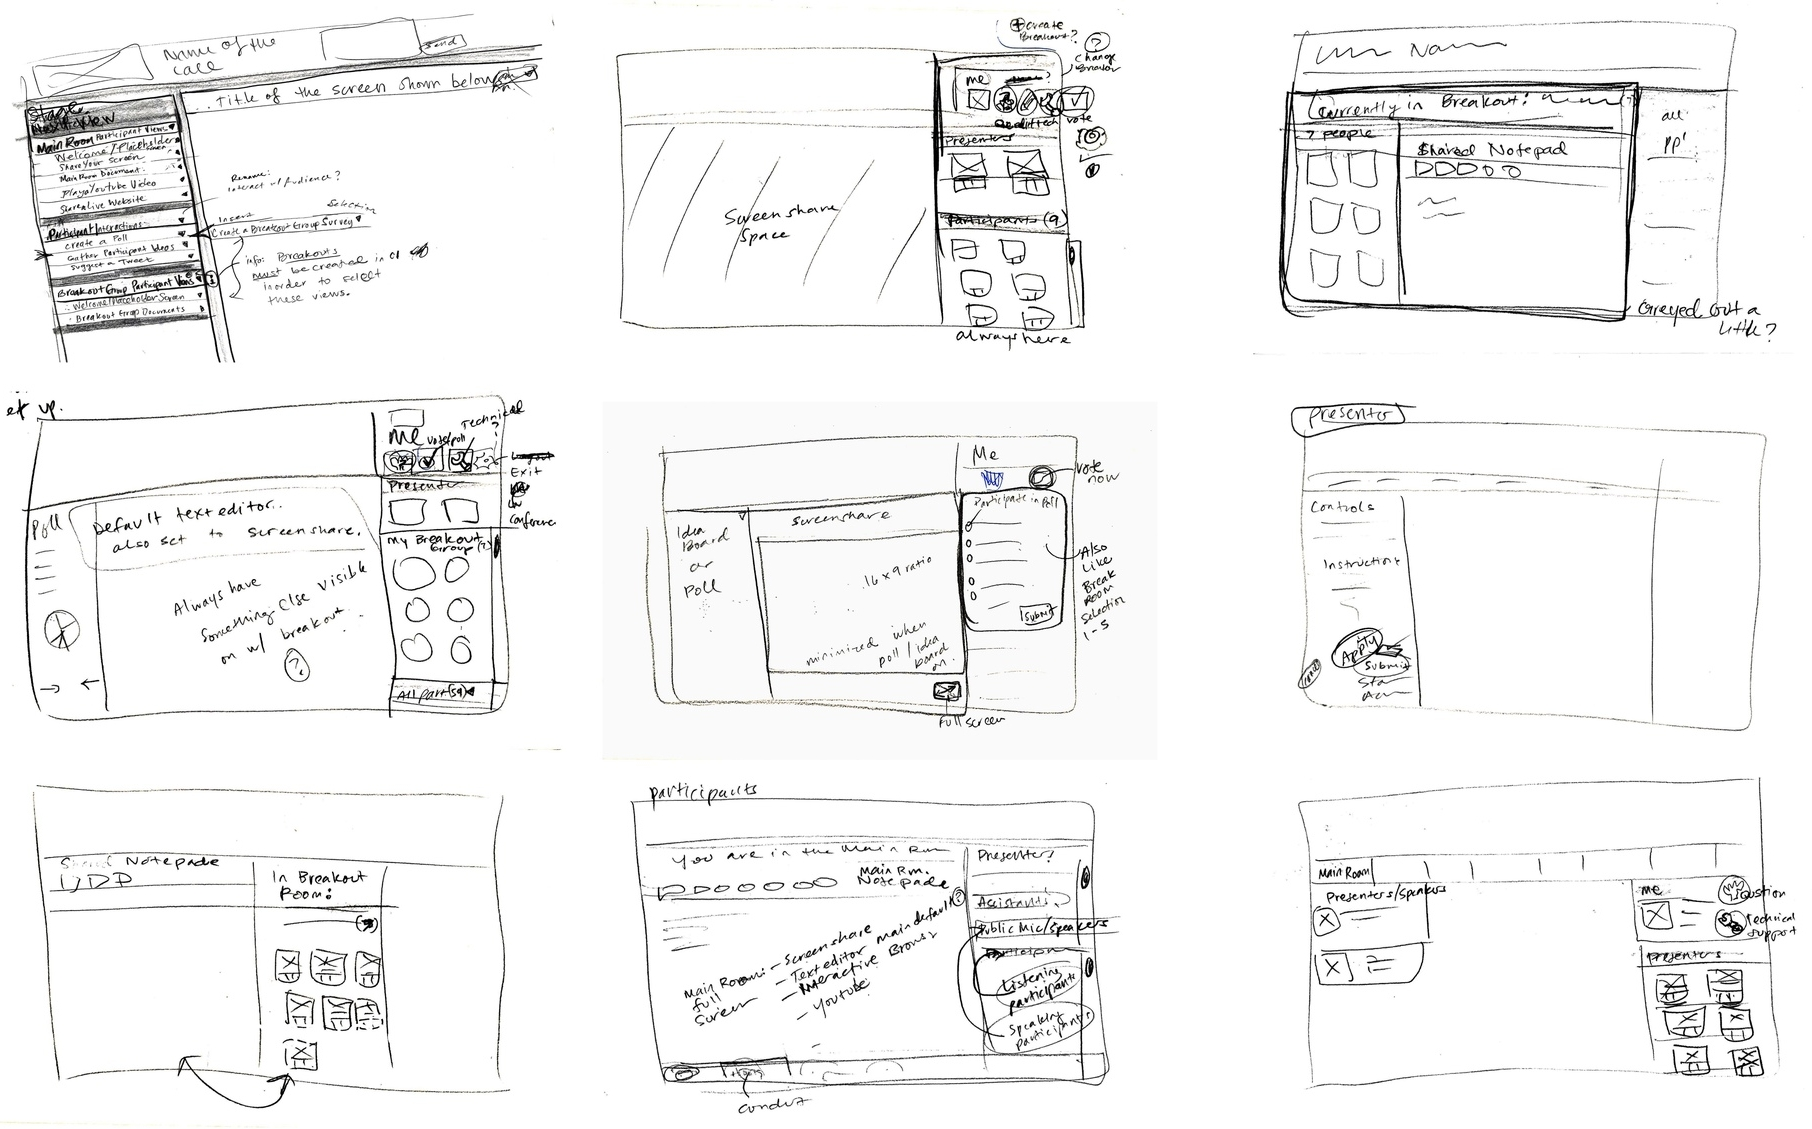 The initial designs I sketched during the ideation process.